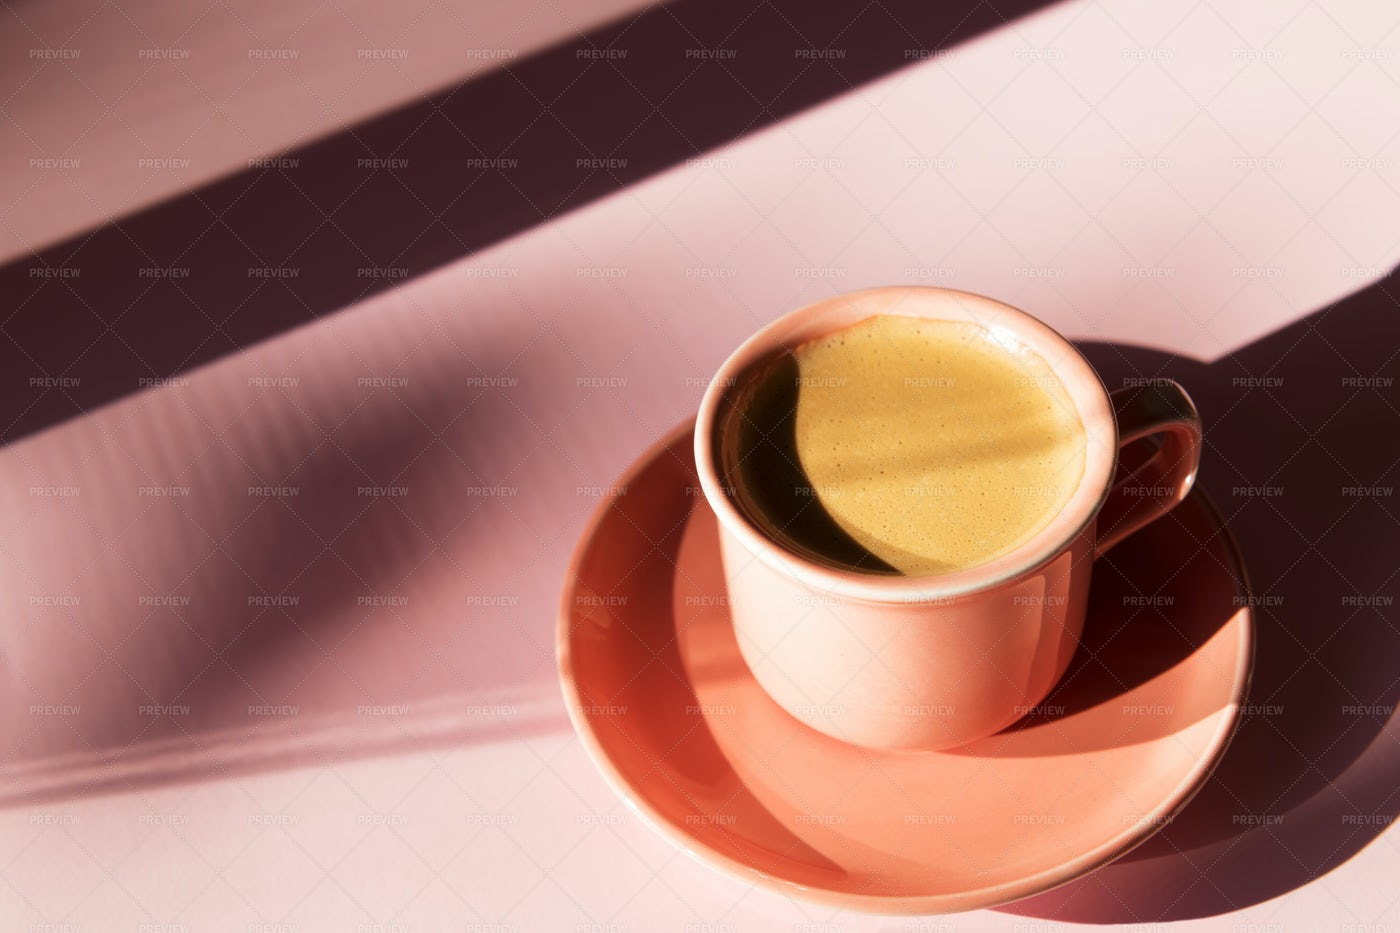 Coral Coffee Cup With Shadows: Stock Photos